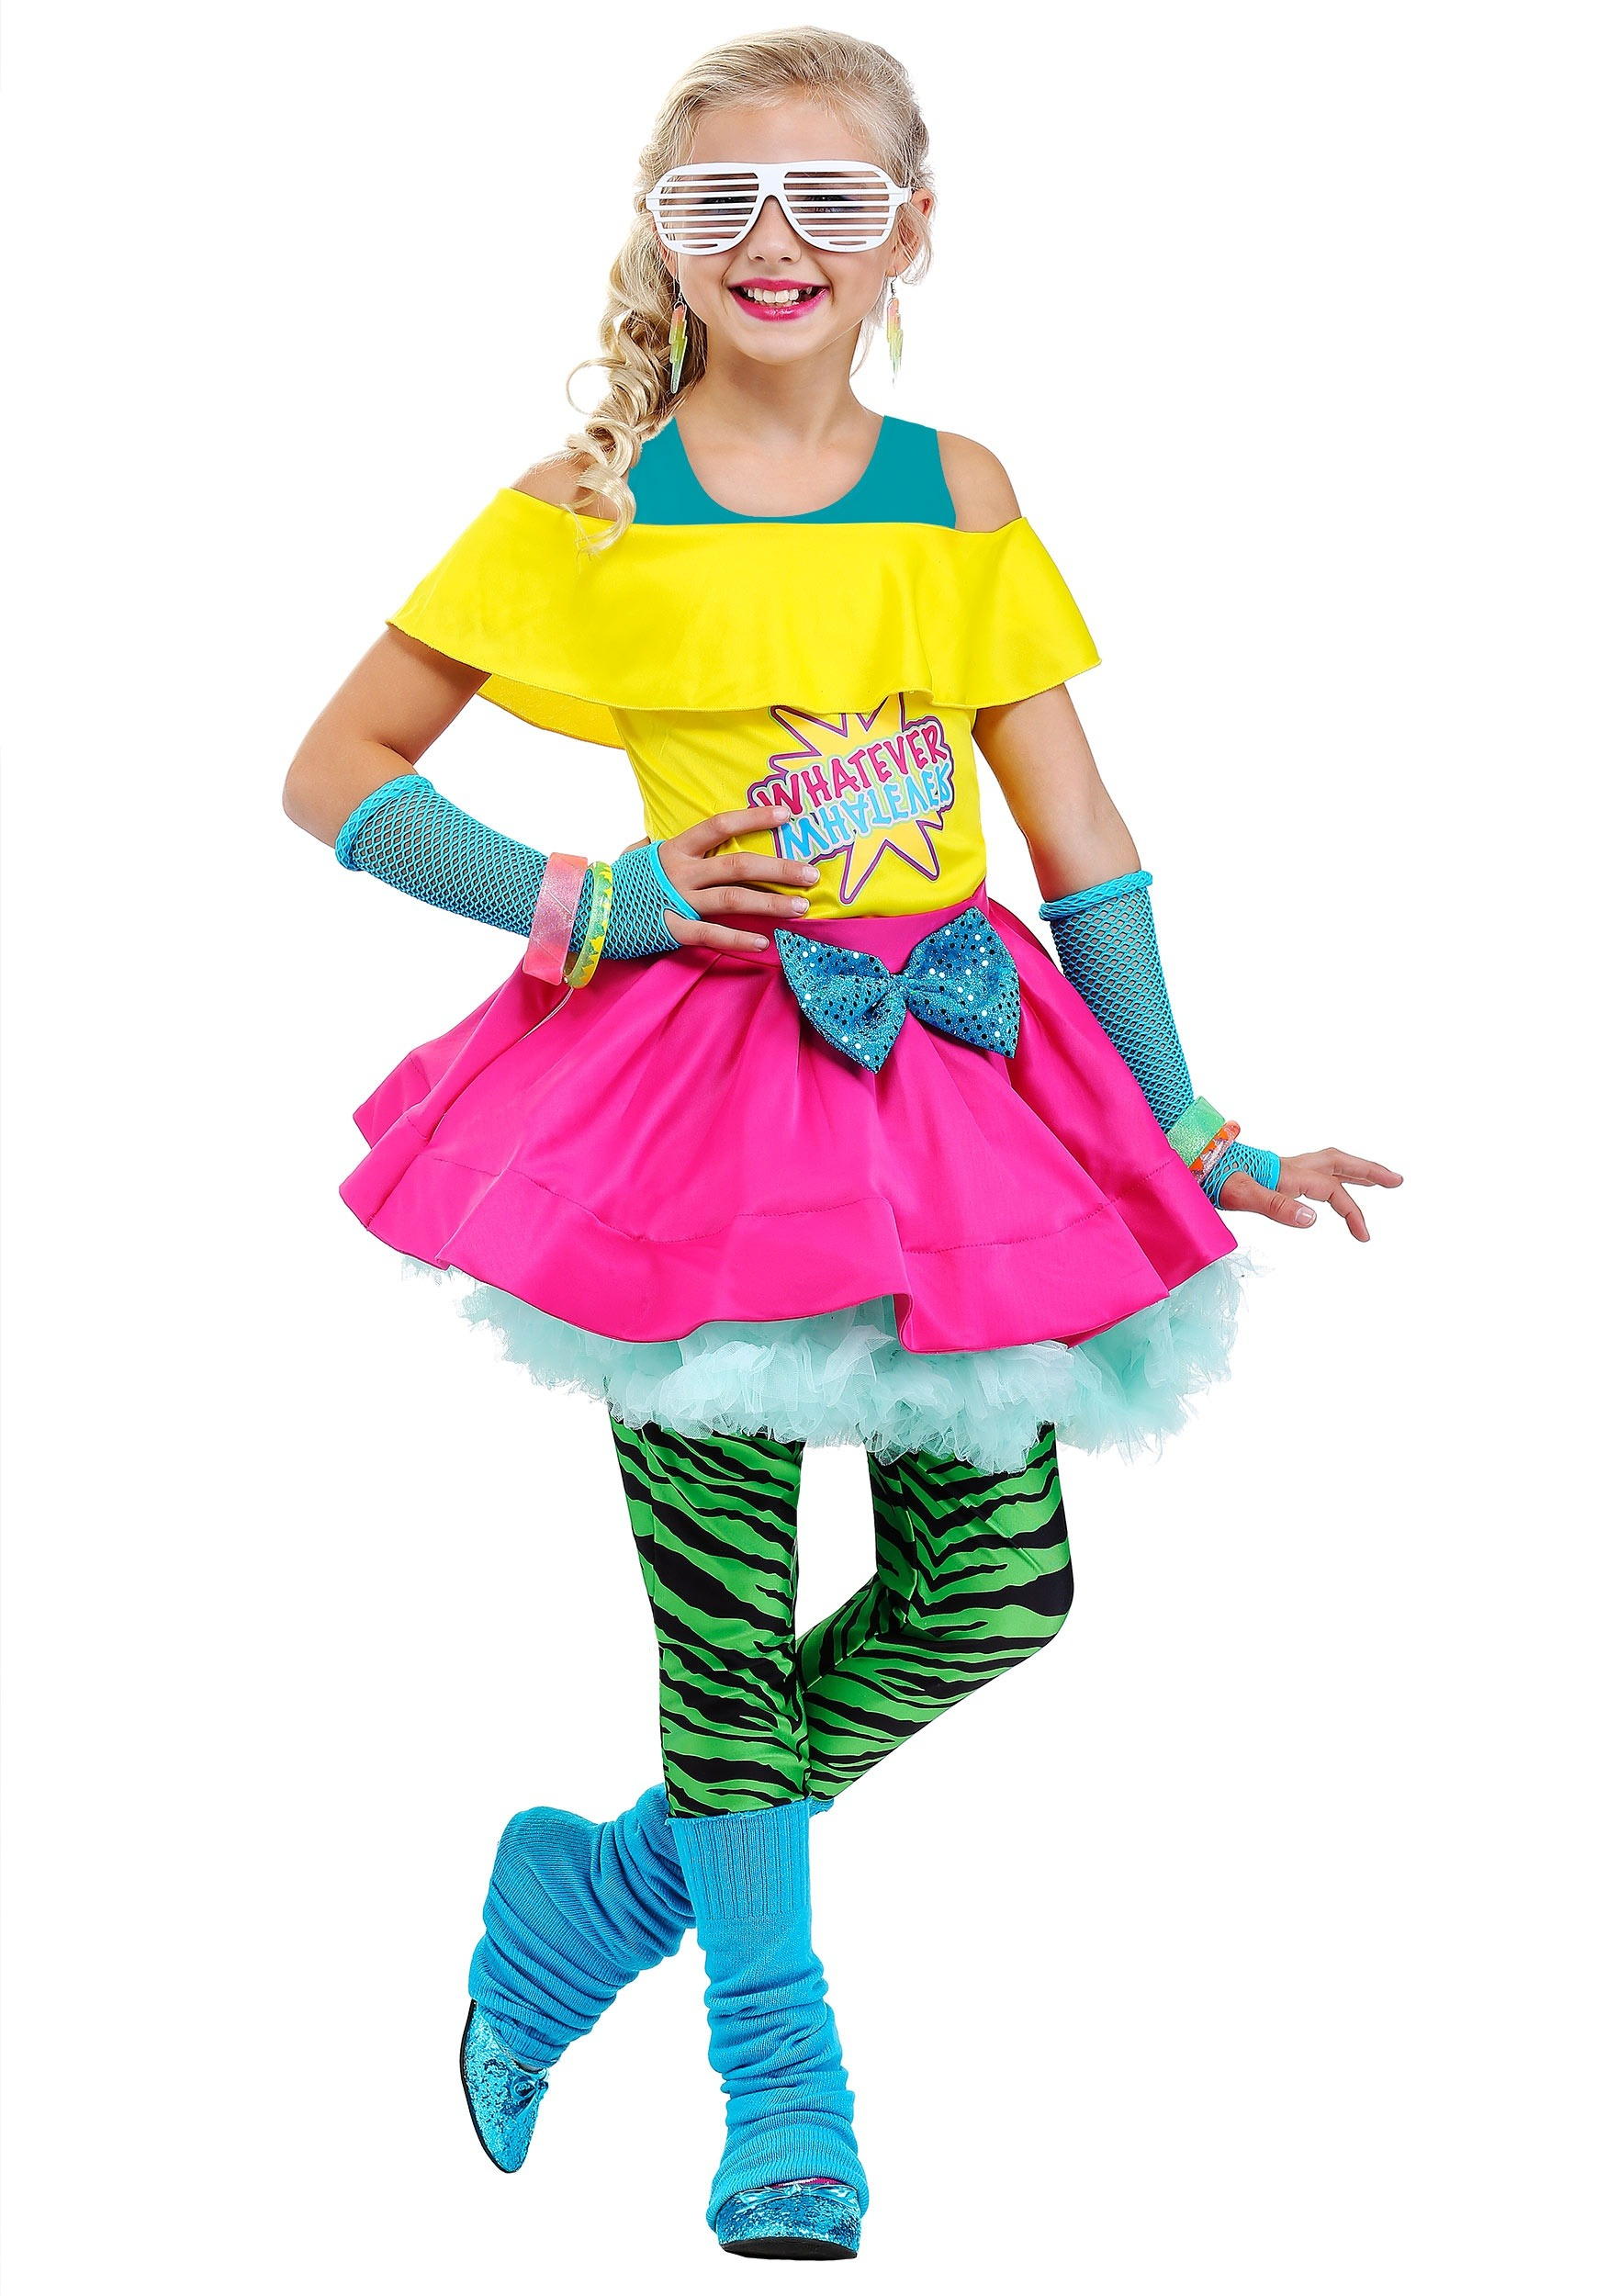 0d5f1ffdc94 Valley Girl 80s Costume for Girls